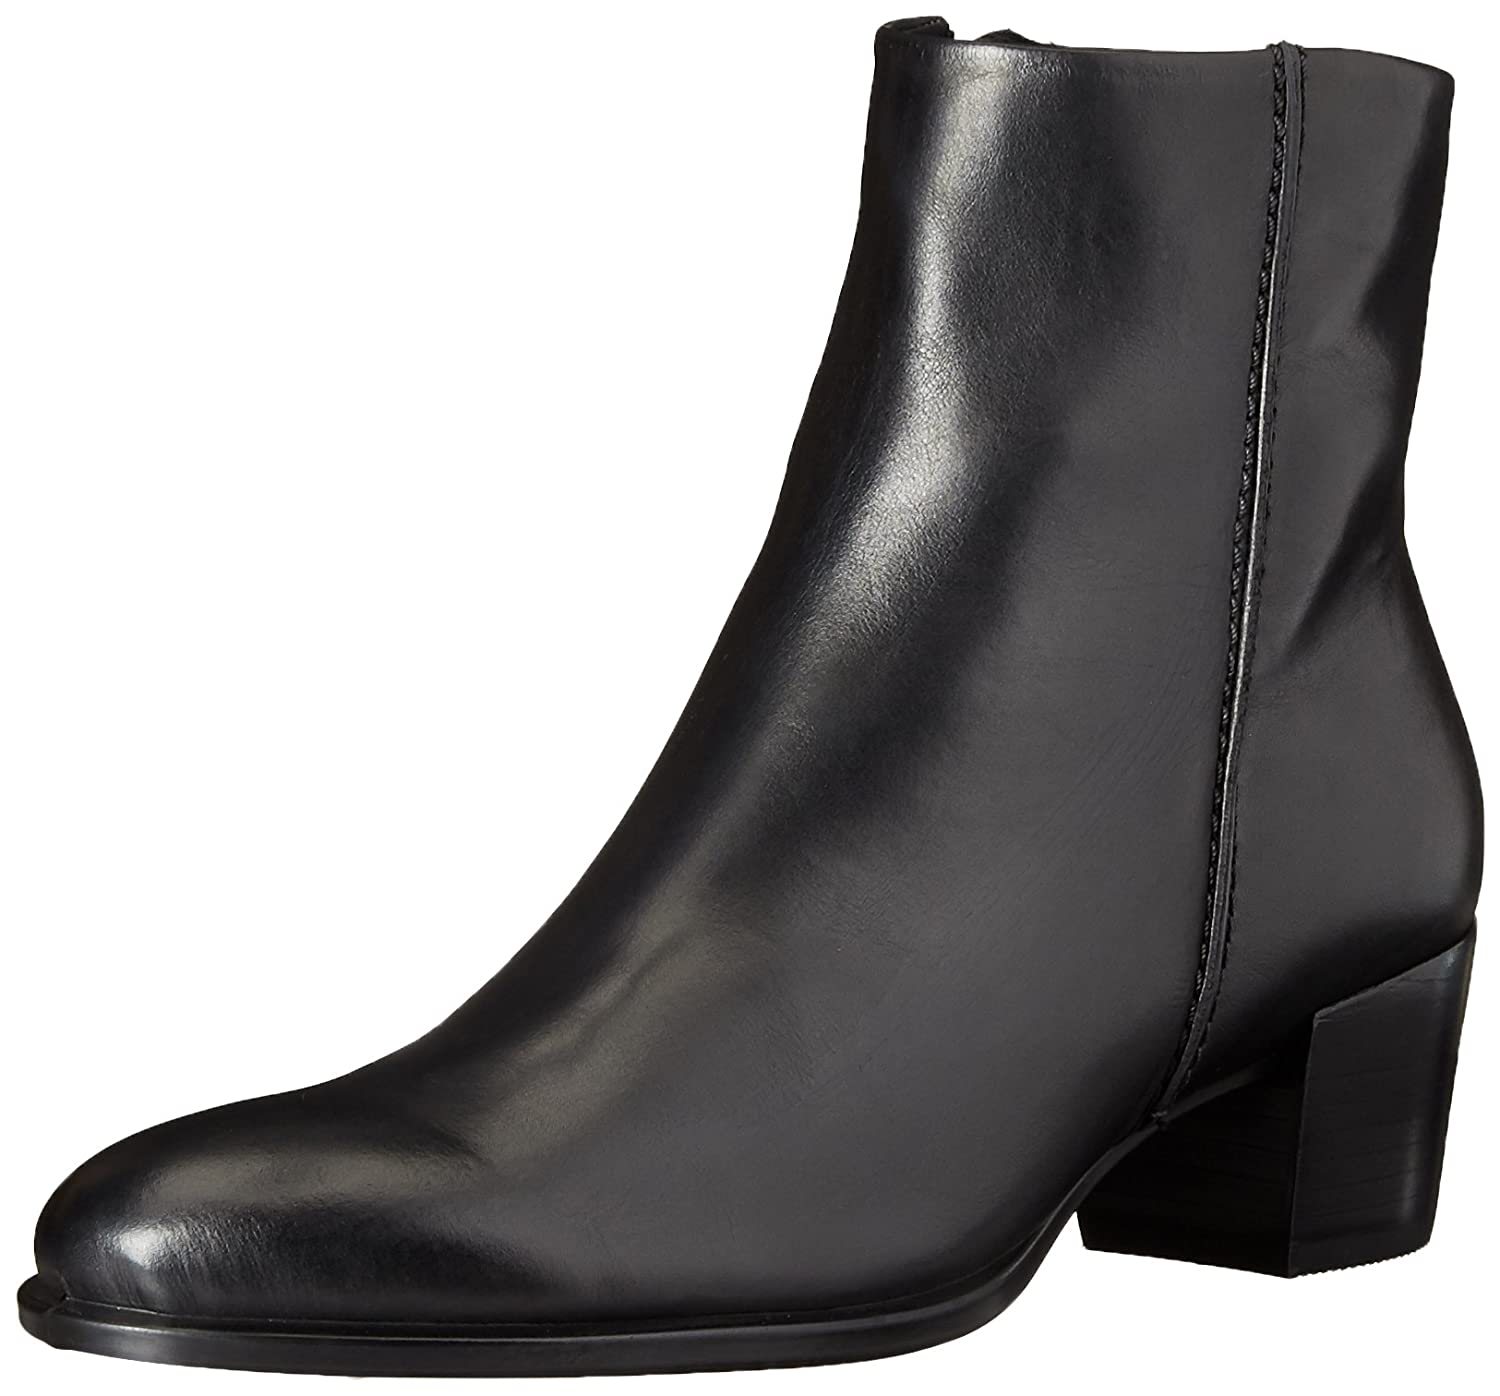 ECCO Women's Shape 35 Boot Ankle Bootie B01END9FD2 36 EU/5-5.5 M US|Black